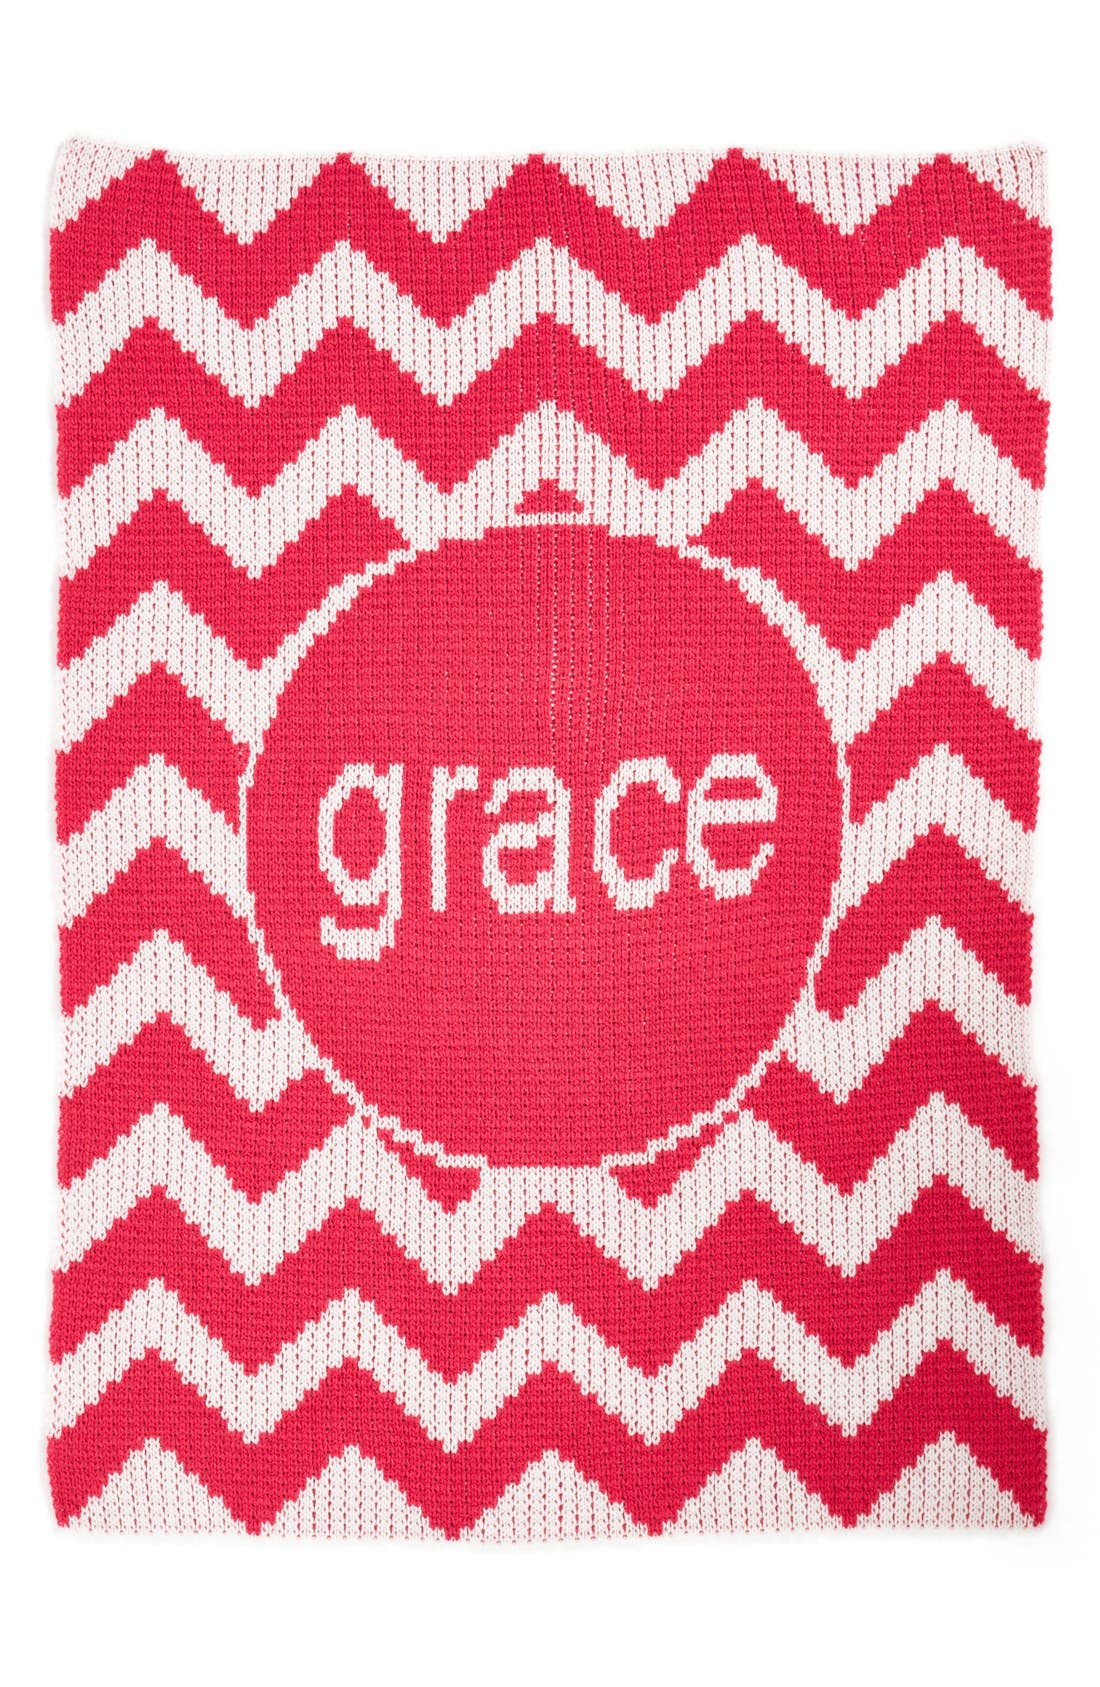 'Chevron - Large' Personalized Blanket,                         Main,                         color, Hot Pink/ White